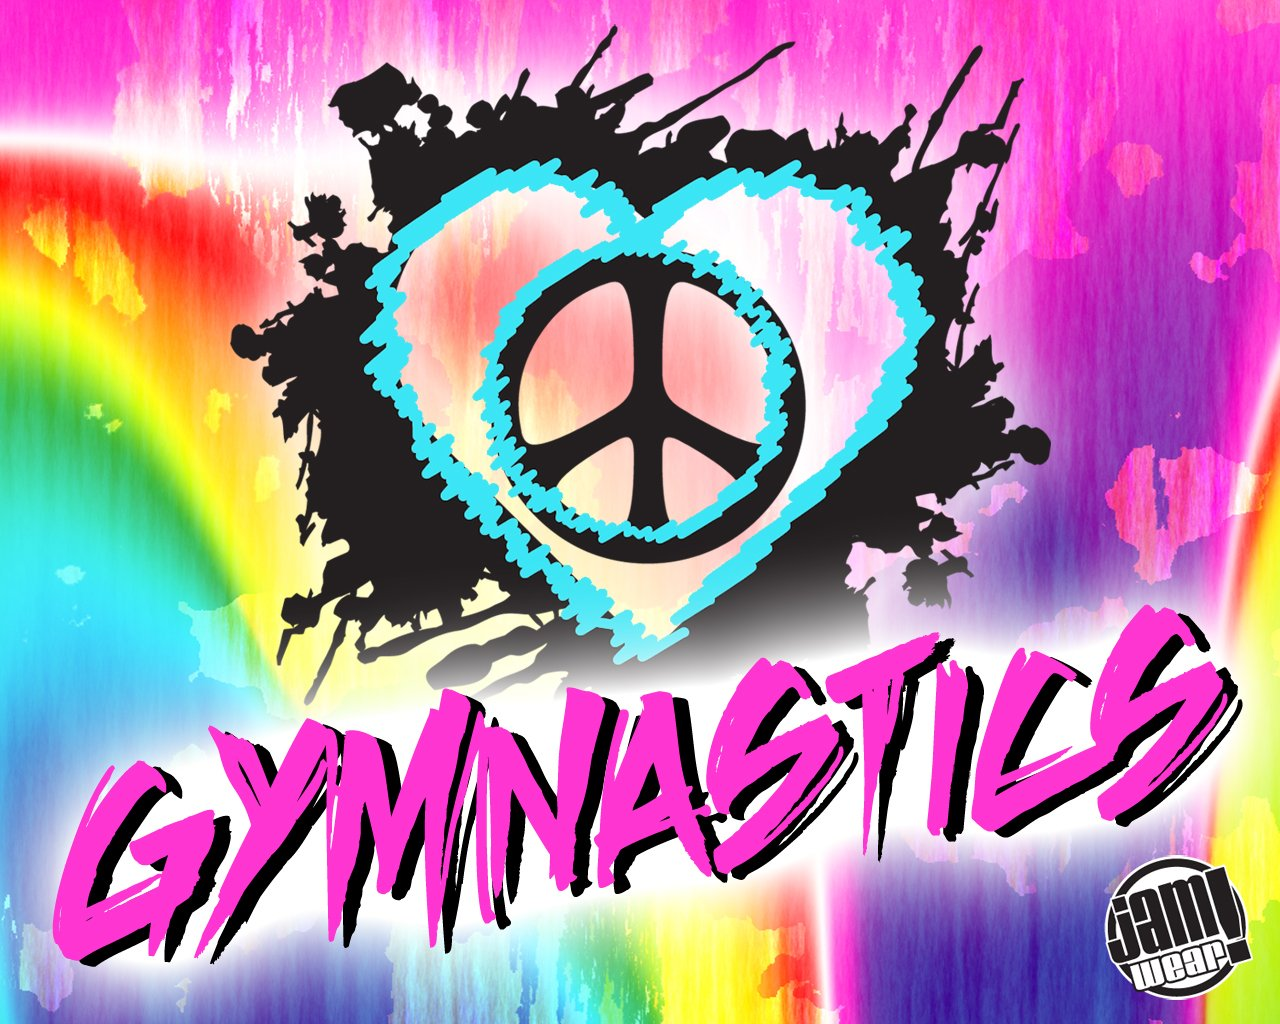 Gymnastics Backgrounds And Wallpapers Wallpapersafari